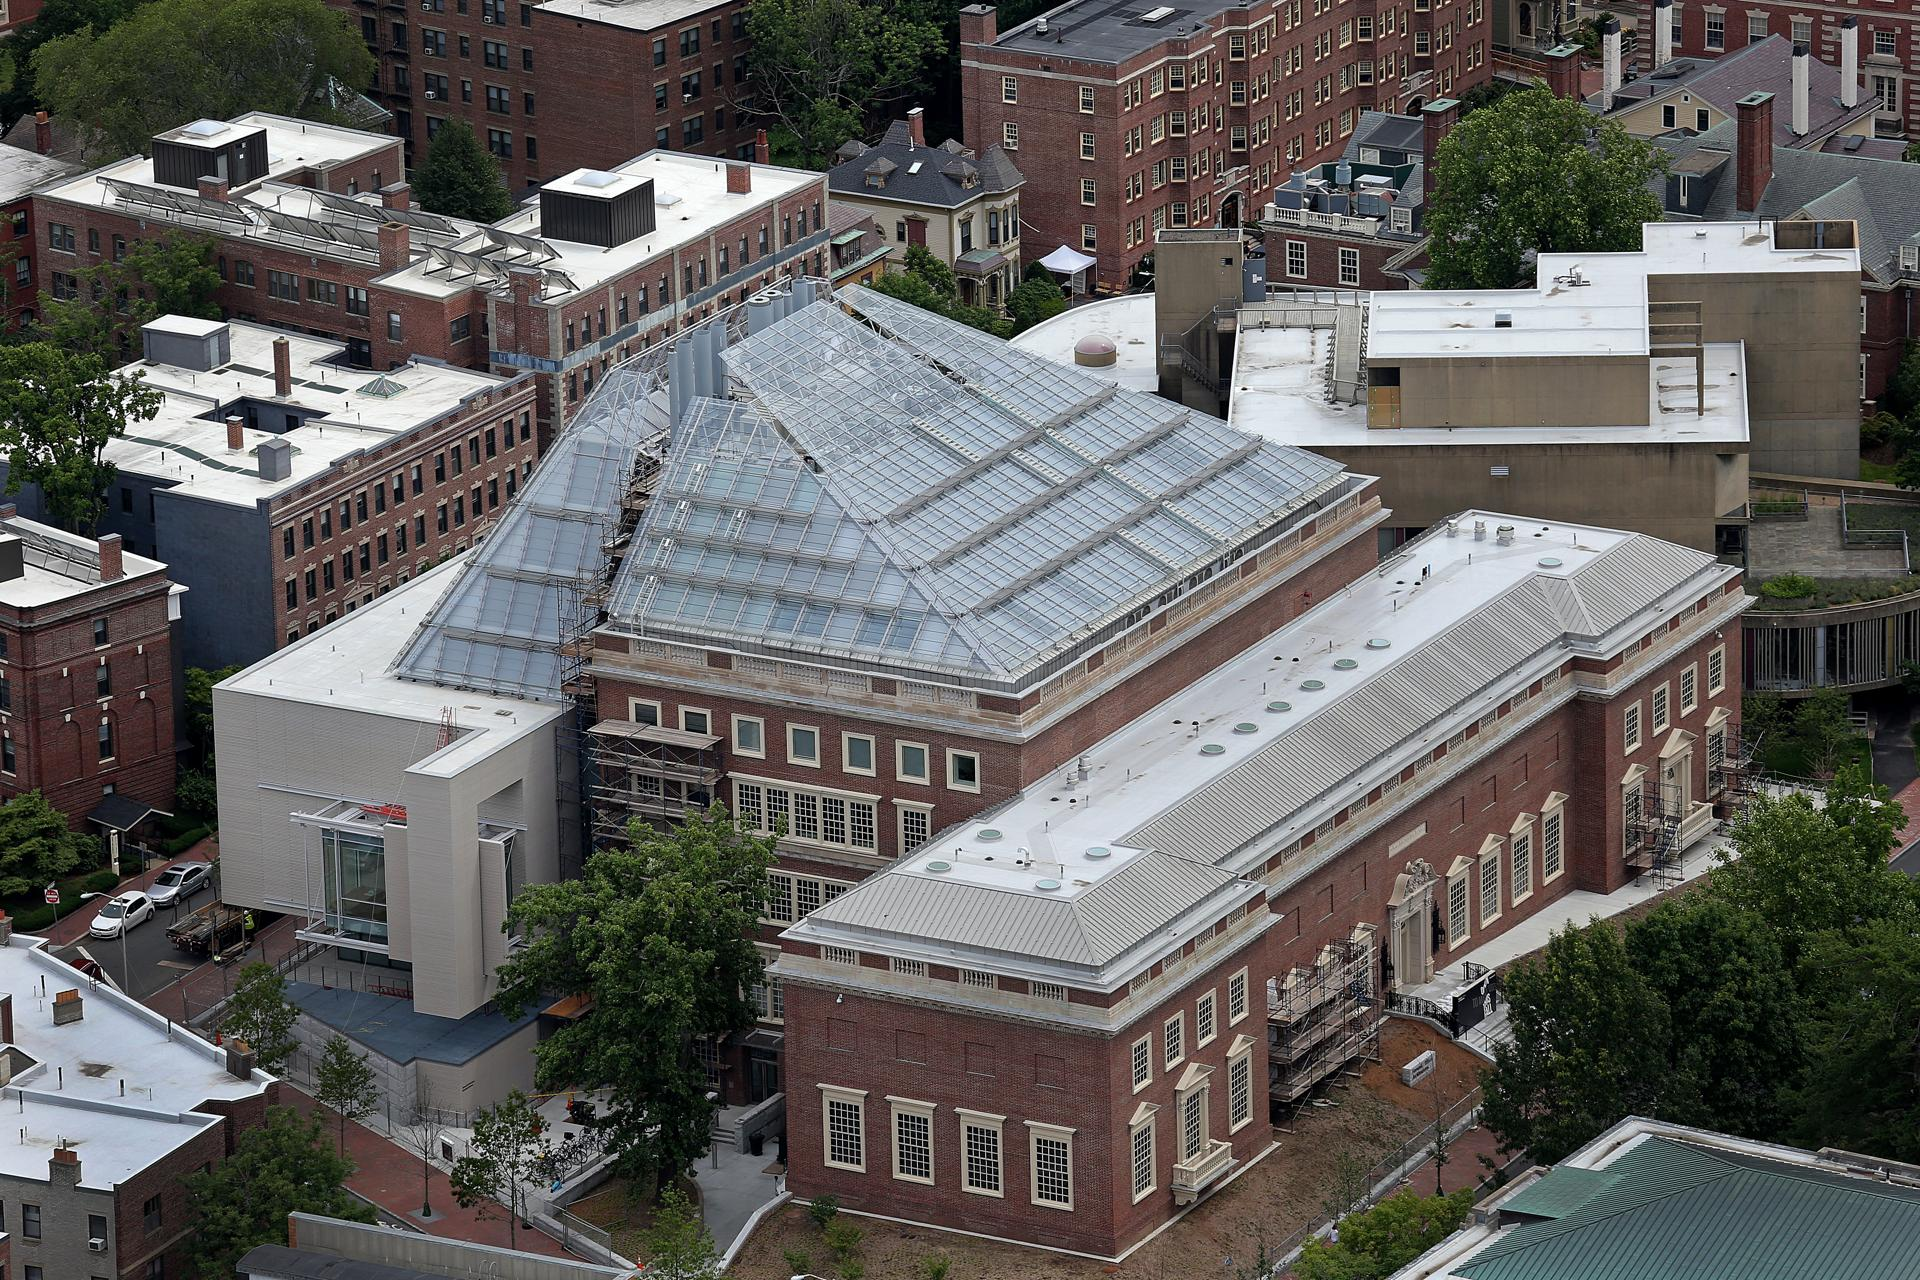 Reopened in 2014, the University's building at 32 Quincy Street unites the Fogg, Busch-Reisinger, and Arthur M. Sackler museums in a single building that was designed by architect Renzo Piano